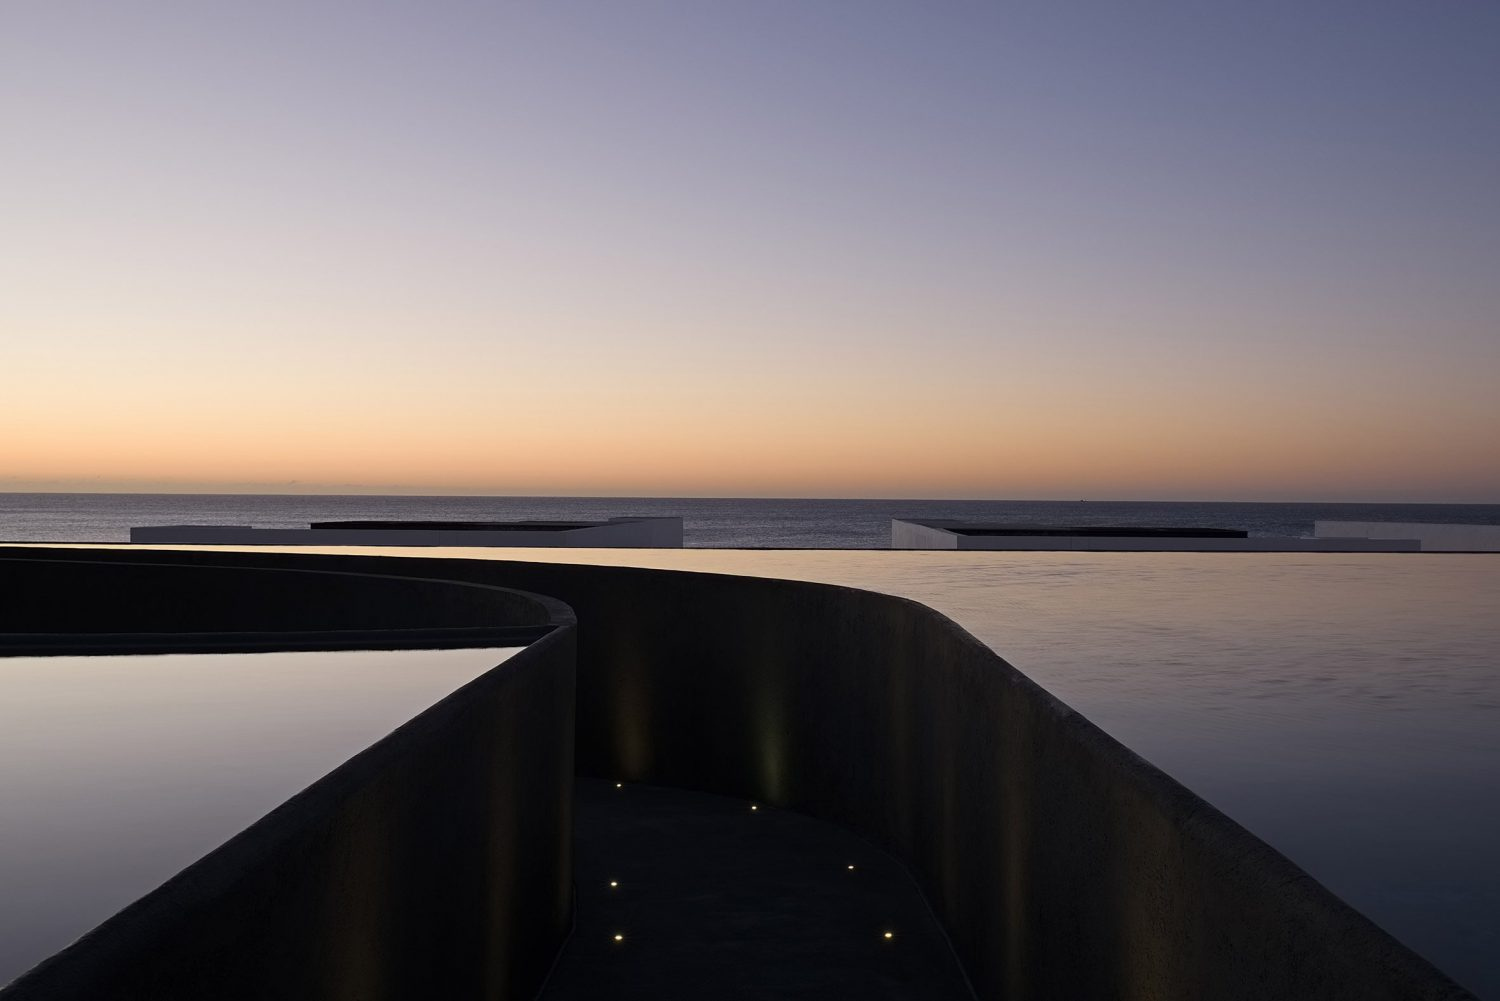 hotel mar adentro Hotel Mar Adentro by Taller Aragonés Surrounded by Expansive Pools Hotel Mar Adentro by Taller Aragon  s Surrounded by Expansive Pools 12